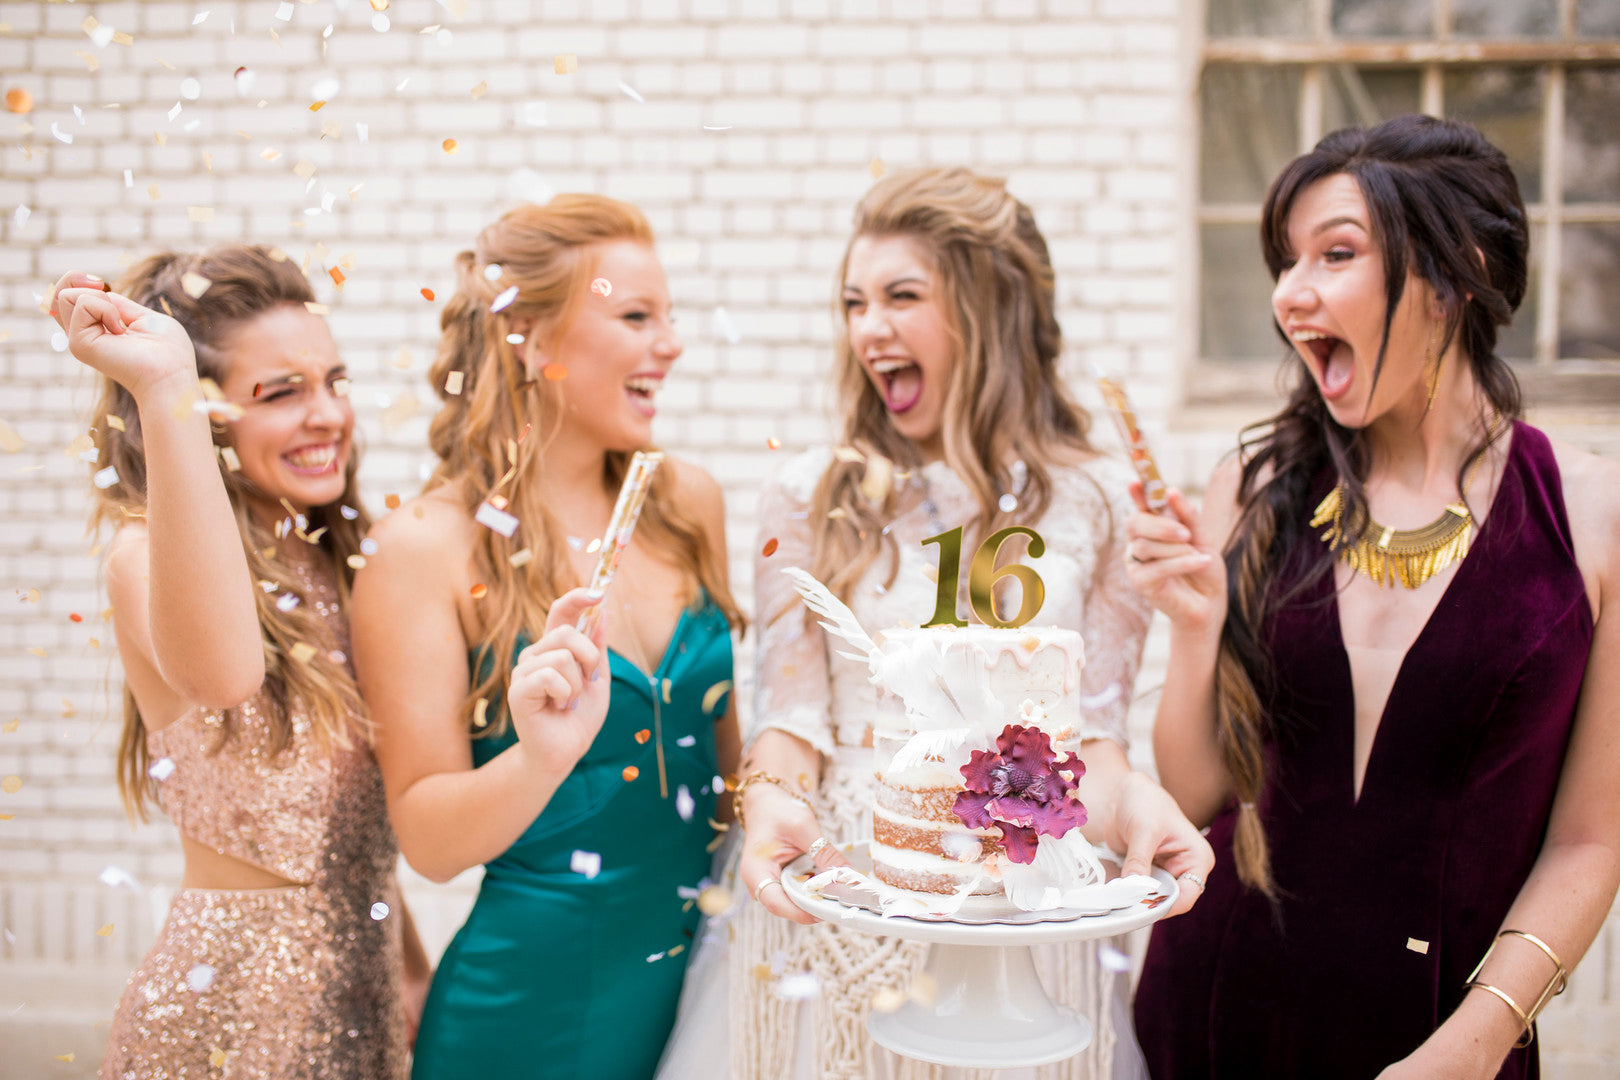 Girls Celebrating With Cake | A Super Bohemian Sweet 16 Soiree | Kate Aspen